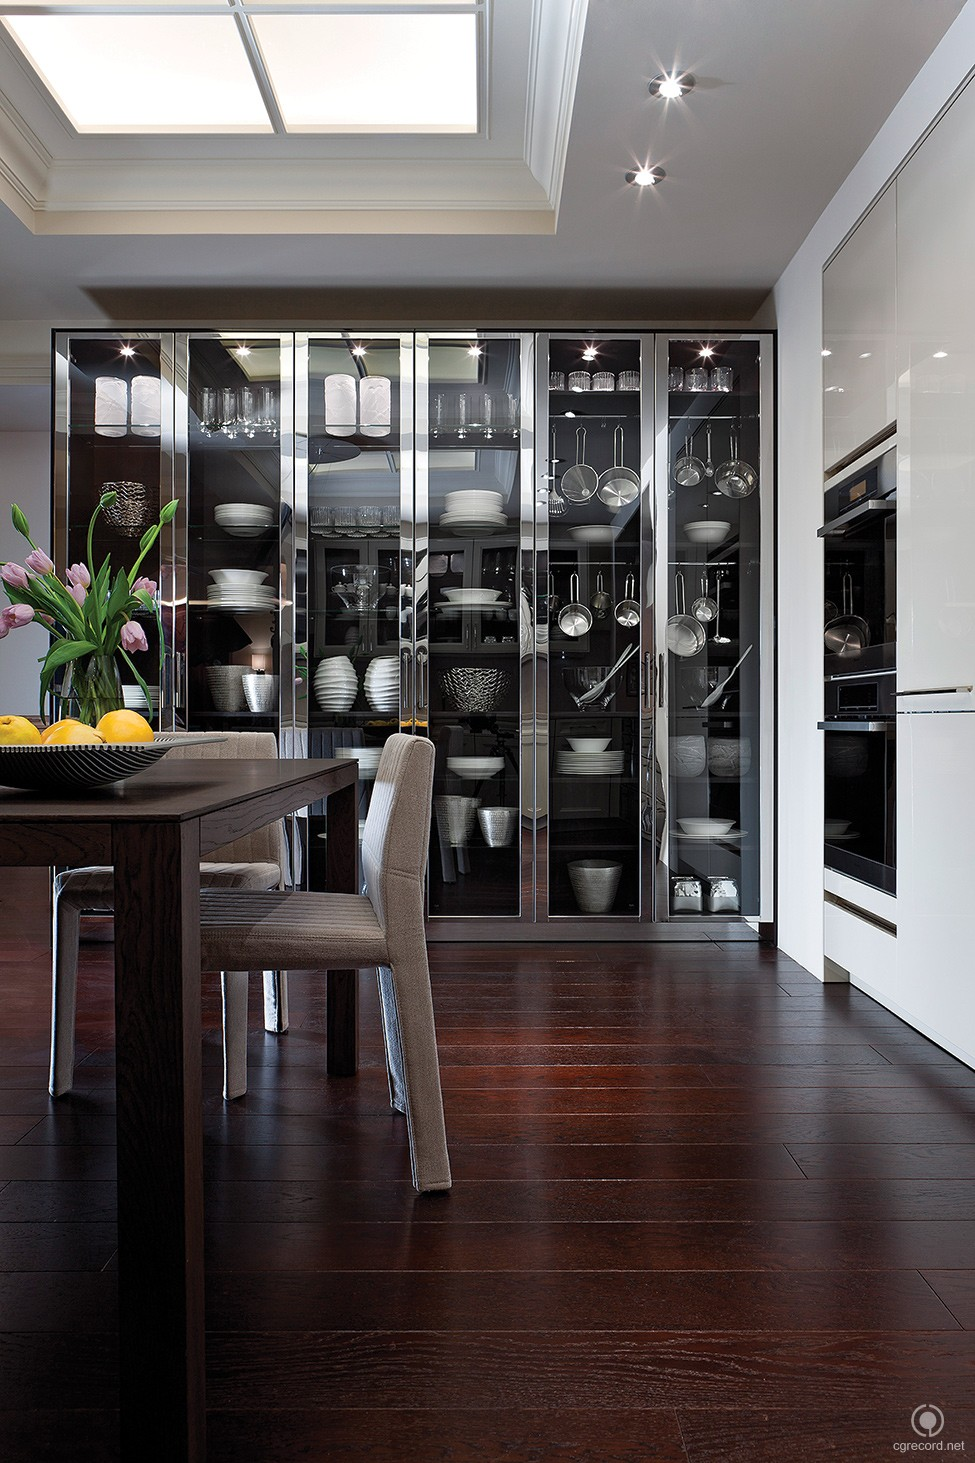 siematic kitchens inspirations area. Black Bedroom Furniture Sets. Home Design Ideas